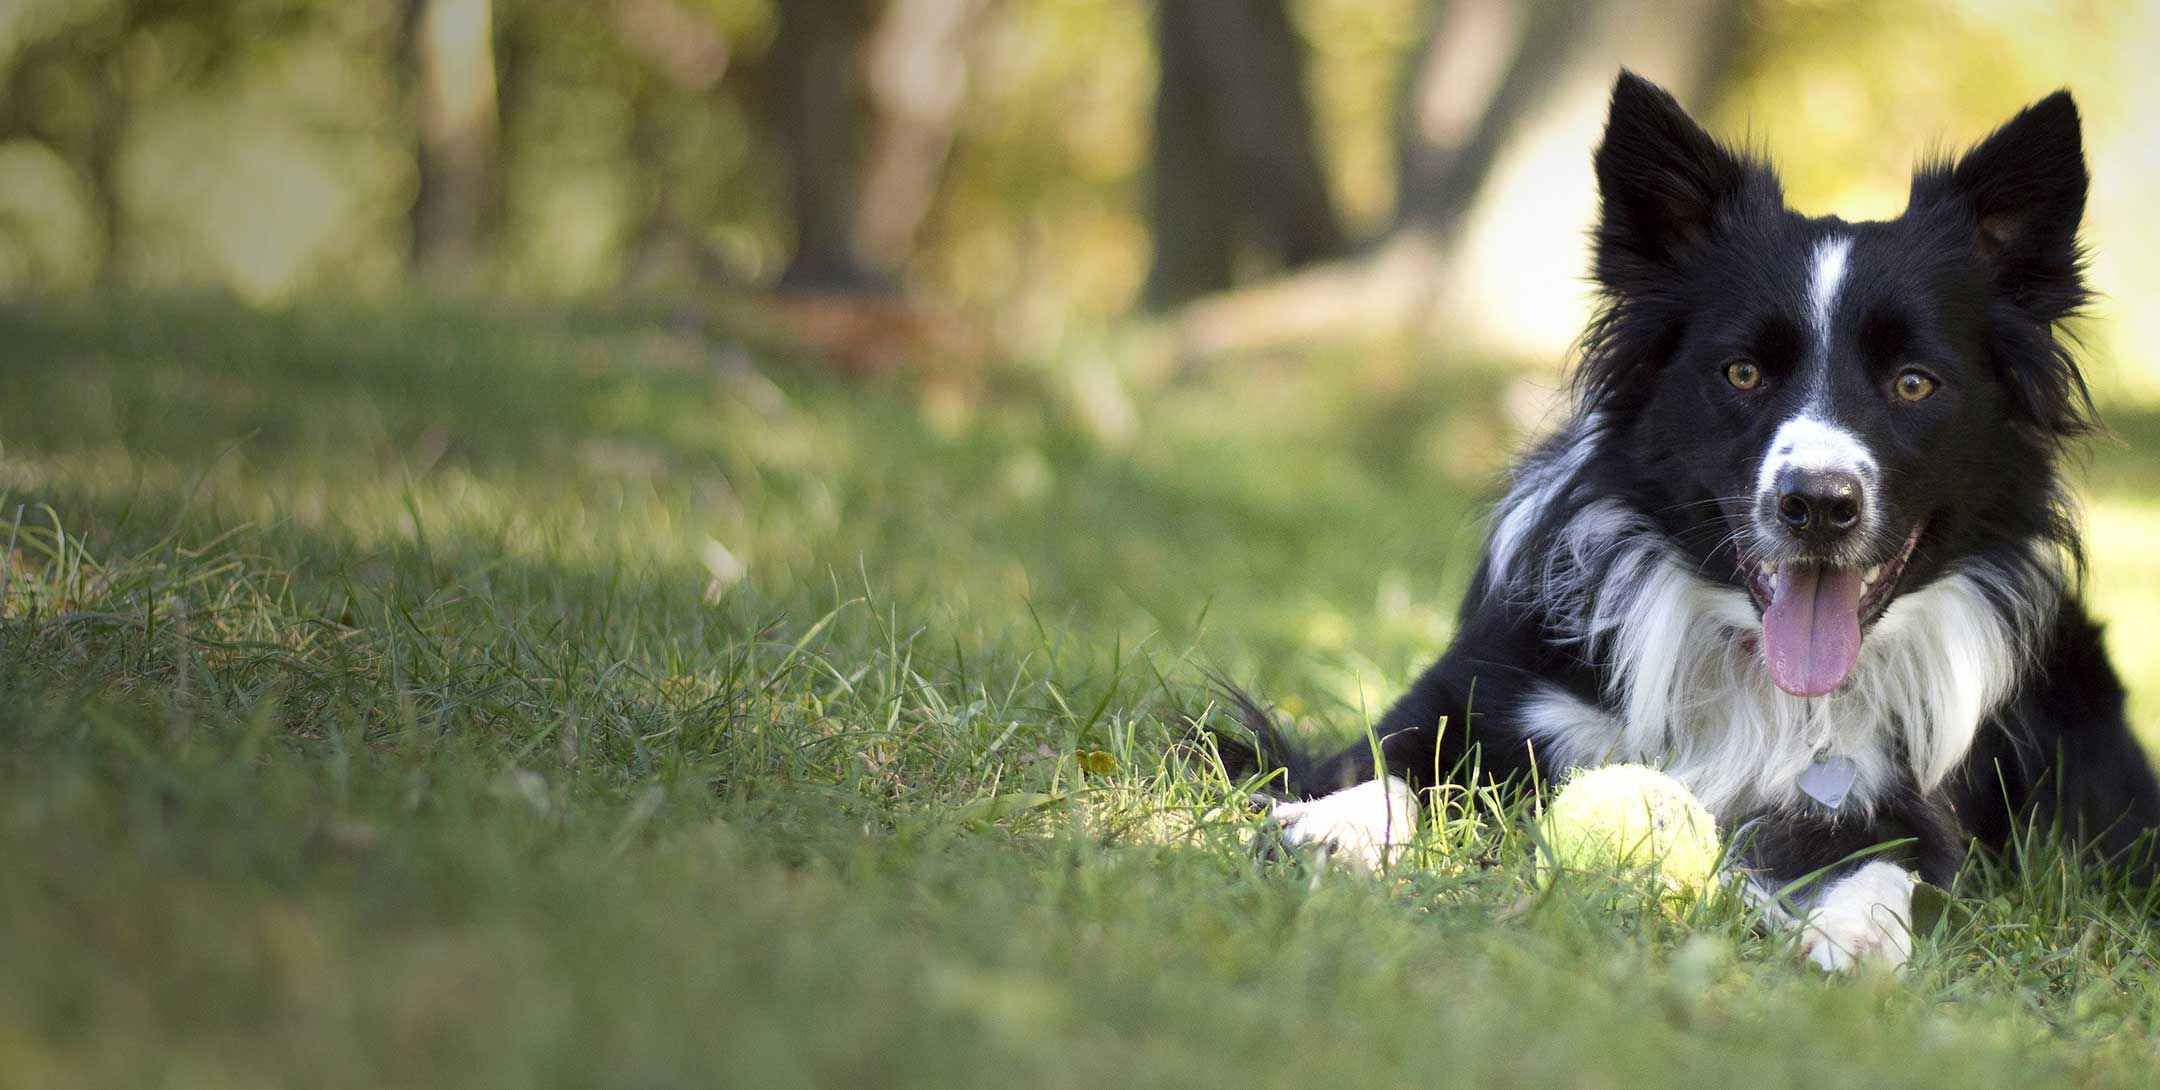 Border Collie with a ball in a field